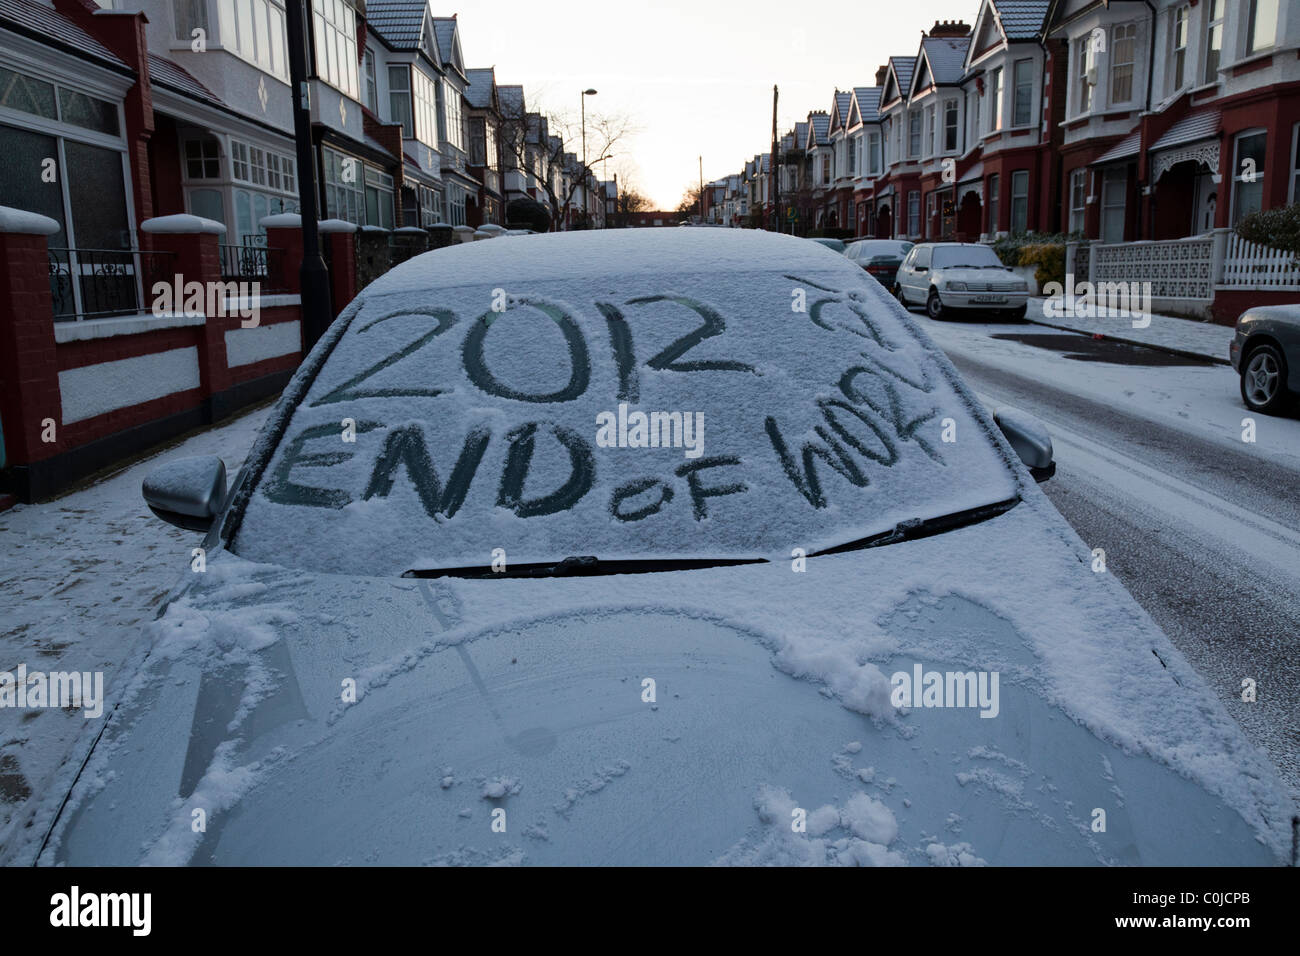 2012 end of the world written on snow-covered car windscreen - Stock Image